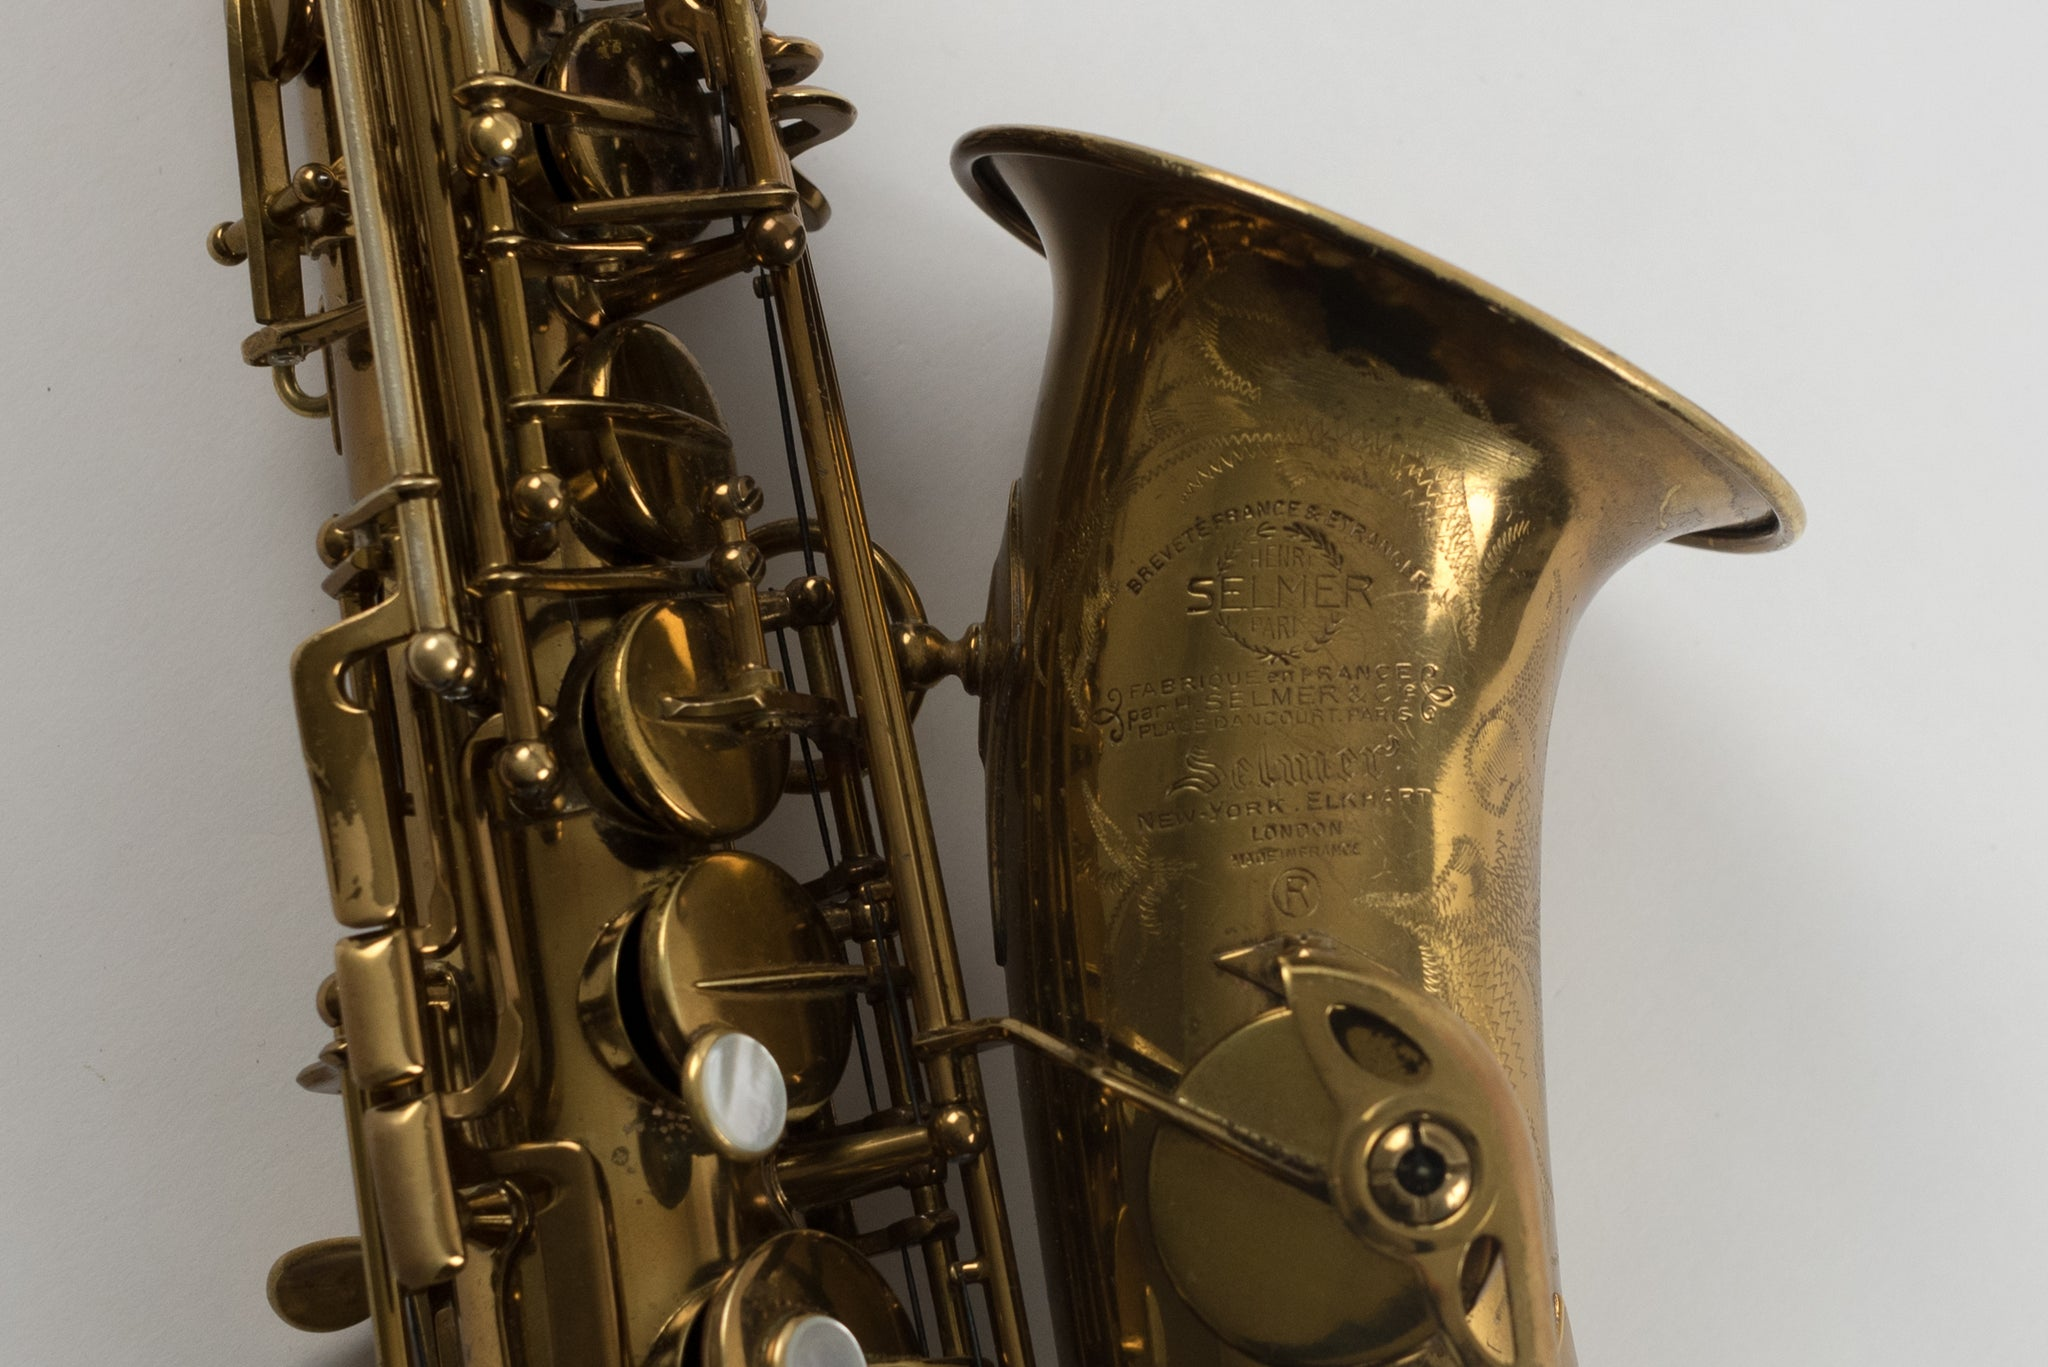 71,xxx Selmer Mark VI Alto Saxophone, 99% Original Lacquer, Fresh Overhaul, HIGH F#, Video